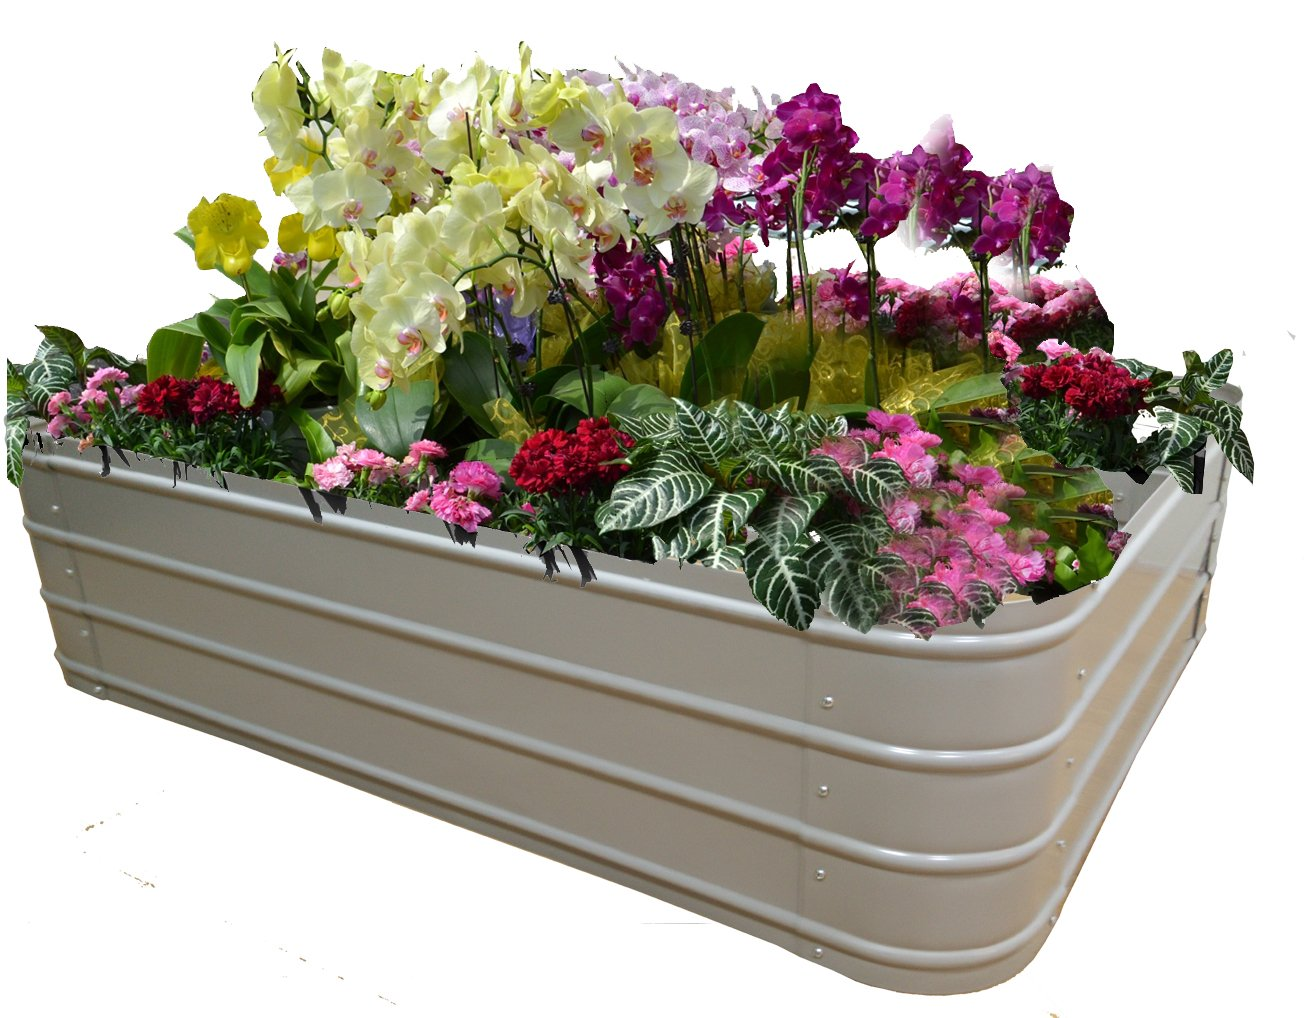 FOYUEE Raised Garden Bed Boxes, Elevated Garden Planting Beds for Growing at Home-a Wonderful Decoration in the Yard 151022 by FOYUEE